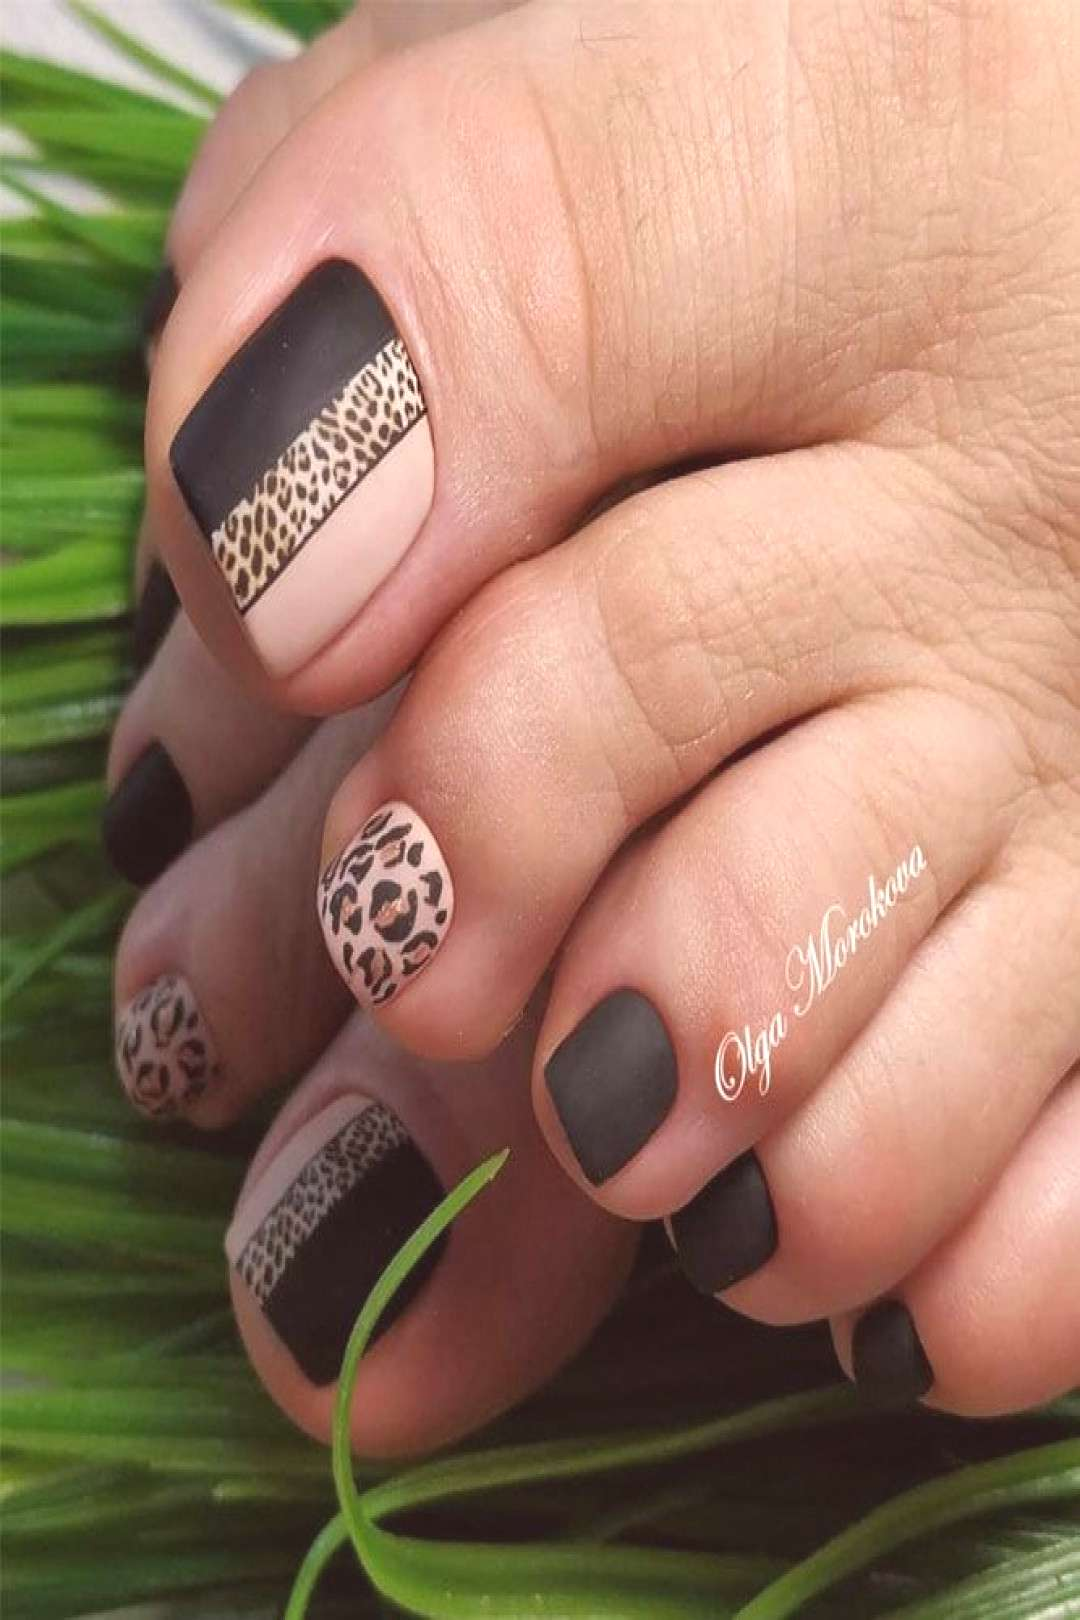 Matte Toe Nails With Leopard Art ★ Keeping your toes immaculate is as important as taking care of